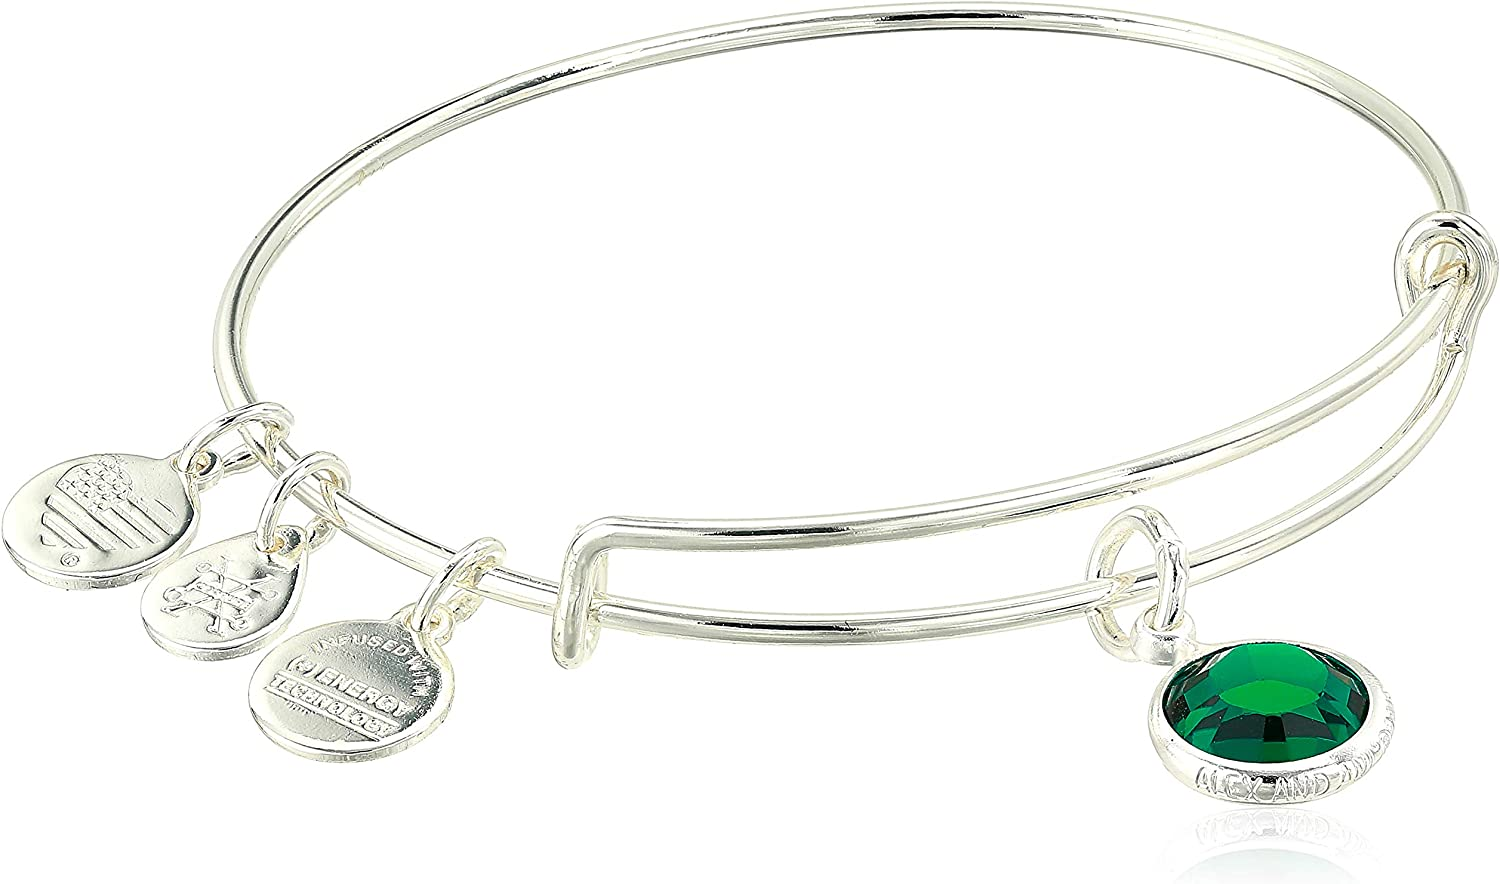 Alex And Ani Replenishment 19 - Pulsera con dije de Swarovski para mujer, color esmeralda, plata brillante, ampliable